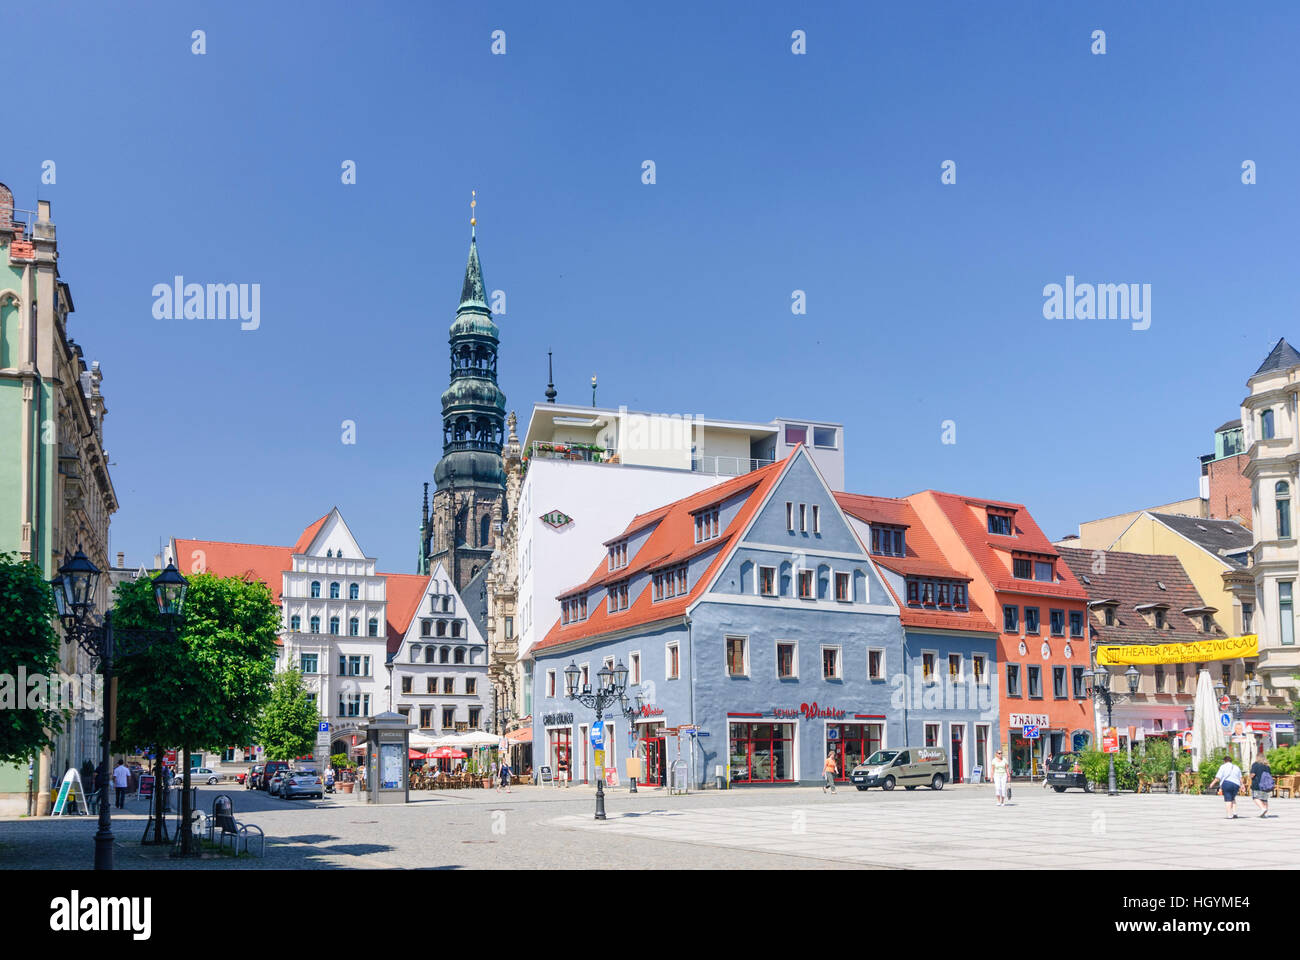 Zwickau: Main market with St. Mary's Cathedral, , Sachsen, Saxony, Germany Stock Photo